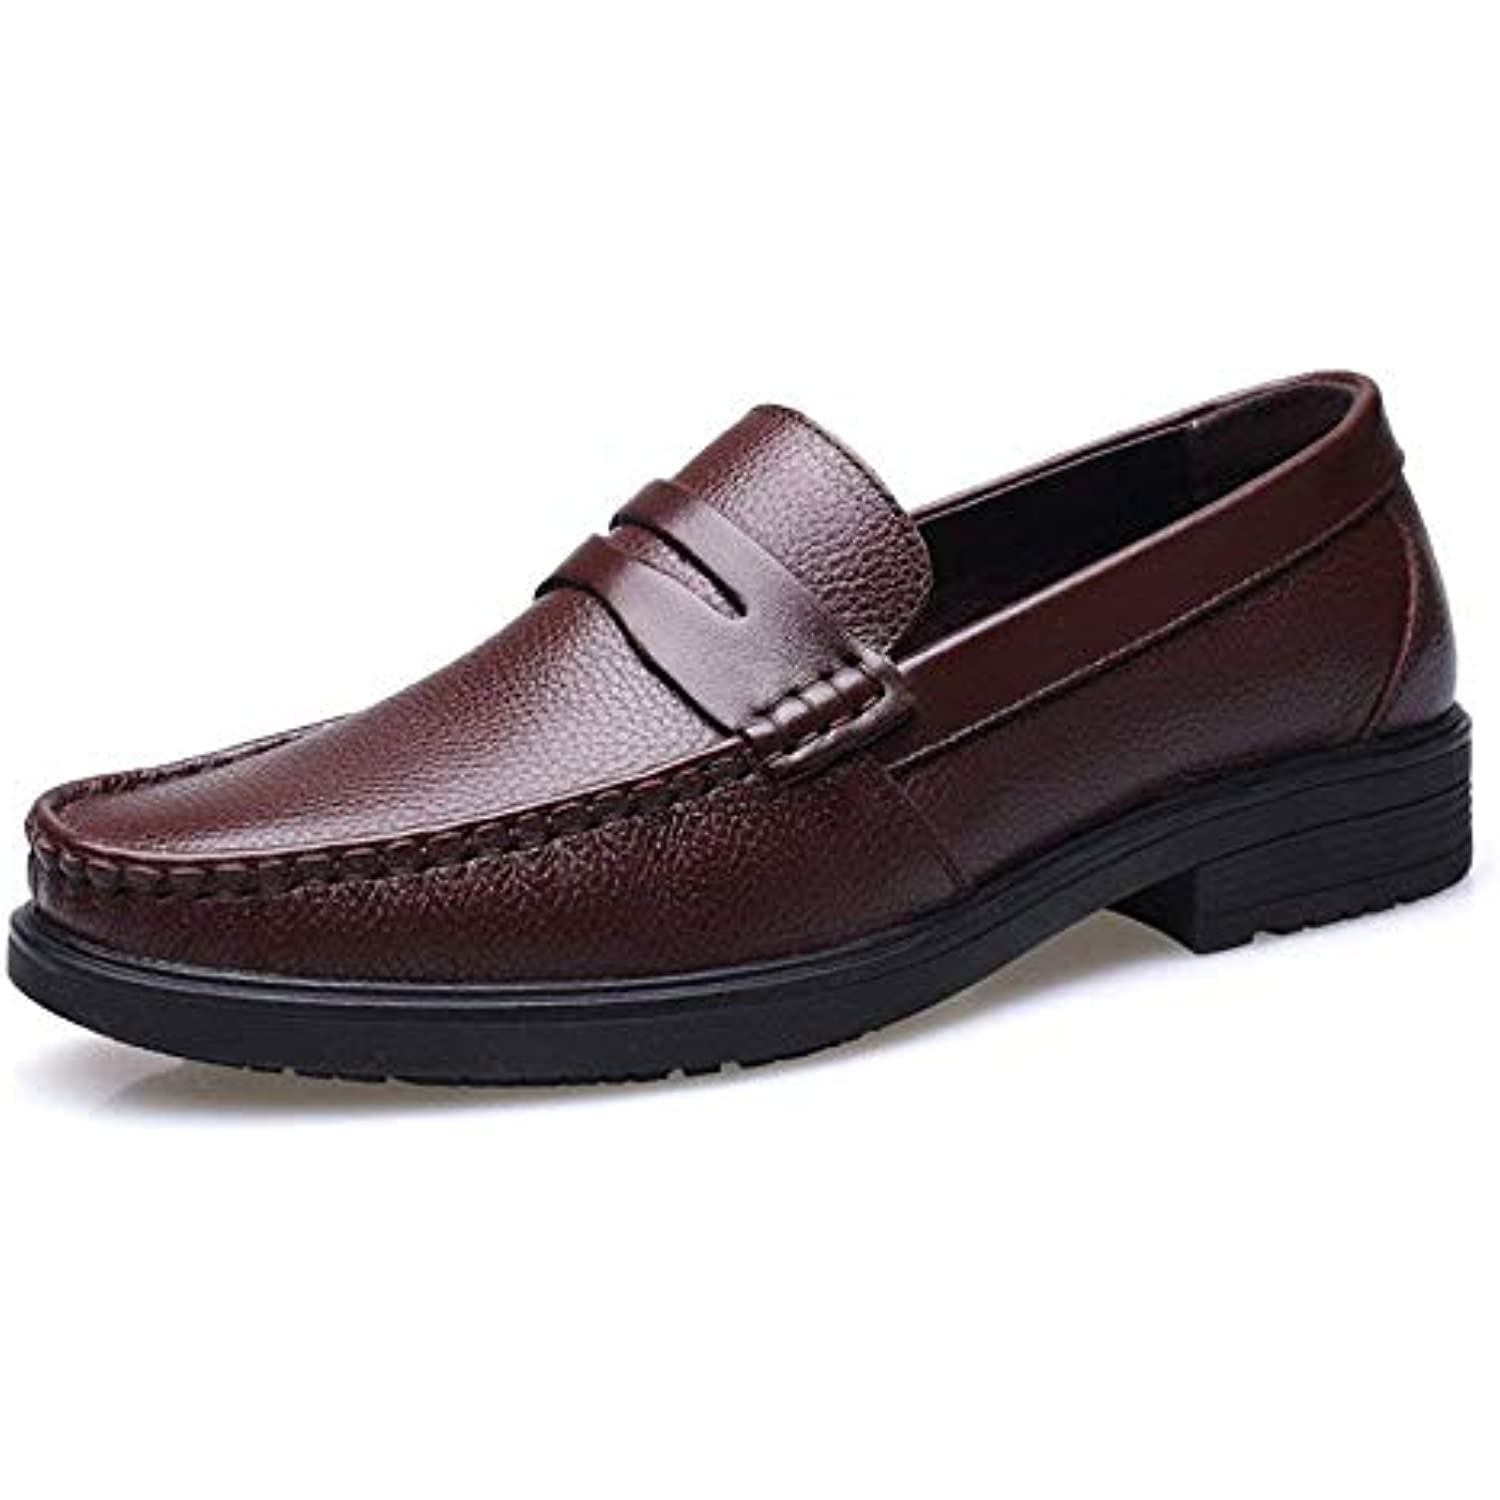 Fuweiencore Mocassins Homme Homme Mocassins Chaussures Pour Mocassins Fuweiencore Homme Fuweiencore Chaussures Pour Fuweiencore Pour Chaussures fEBSfqv